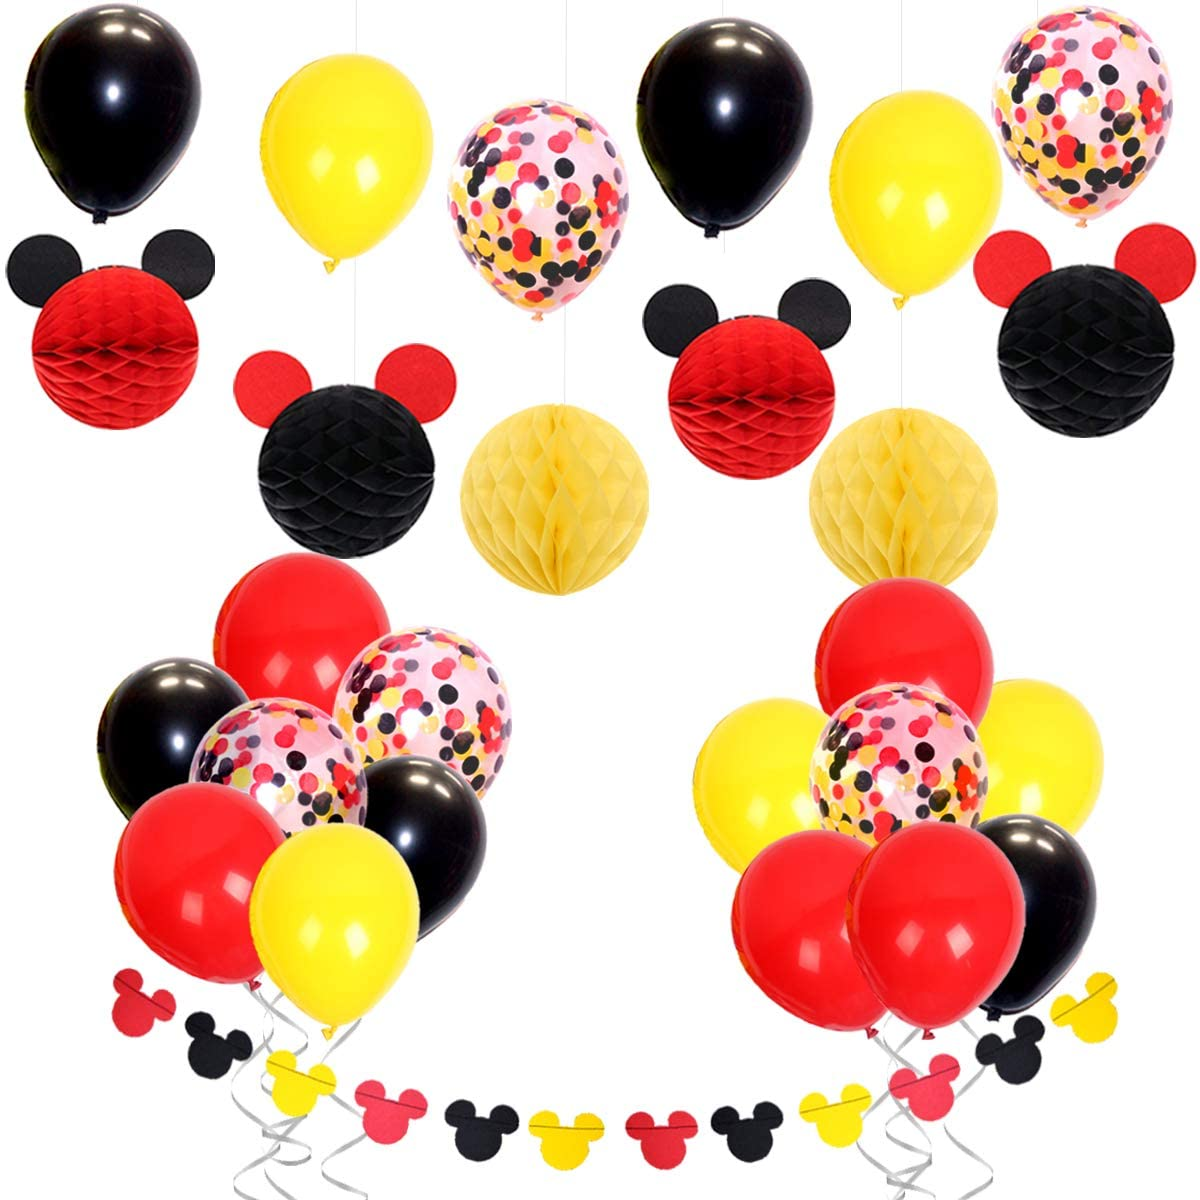 JOYMEMO Mickey Themed Party Decorations Set for Baby Shower, Birthday Party with Balloons Mickey Ears Paper Honeycomb Balls and Garland